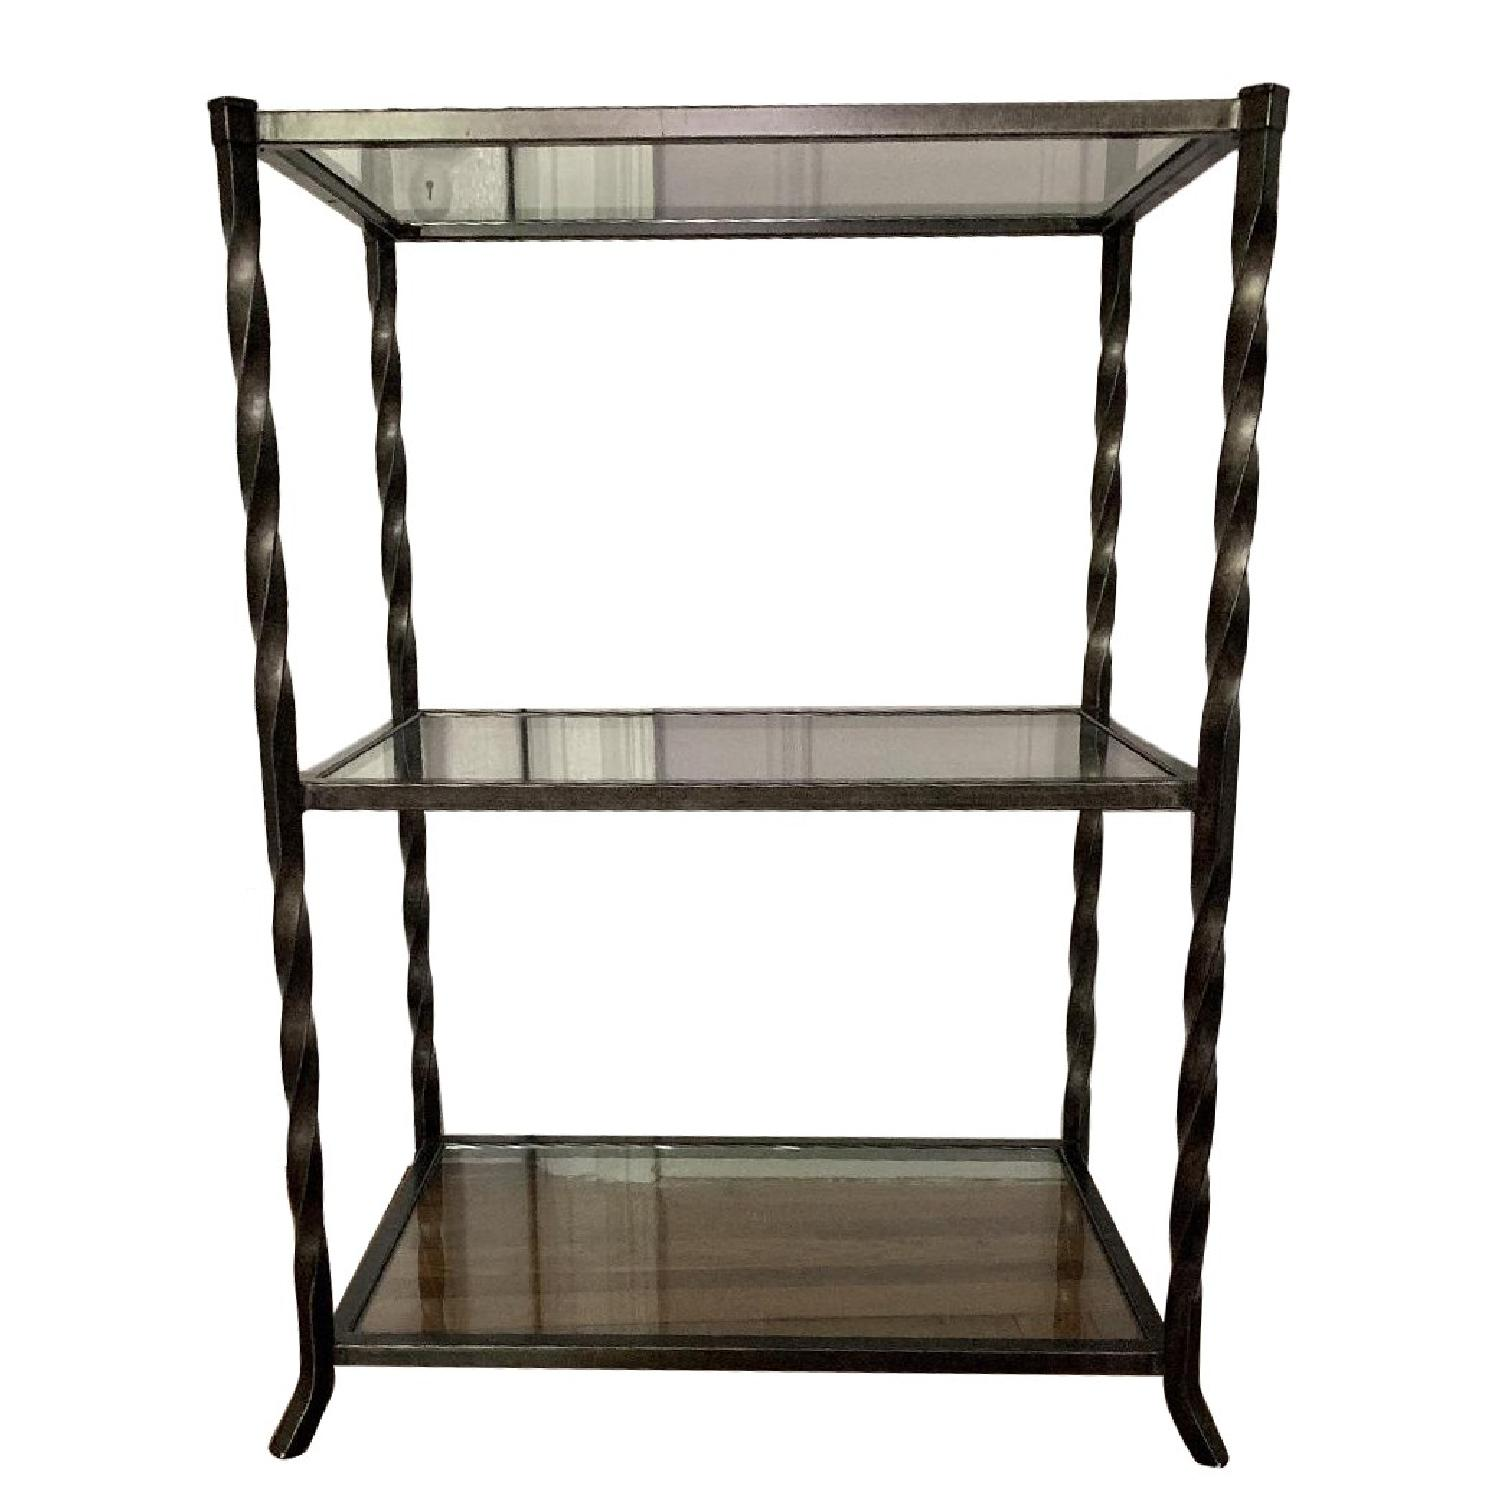 Crate & Barrel Glass & Iron Table w/ Twist Detailing